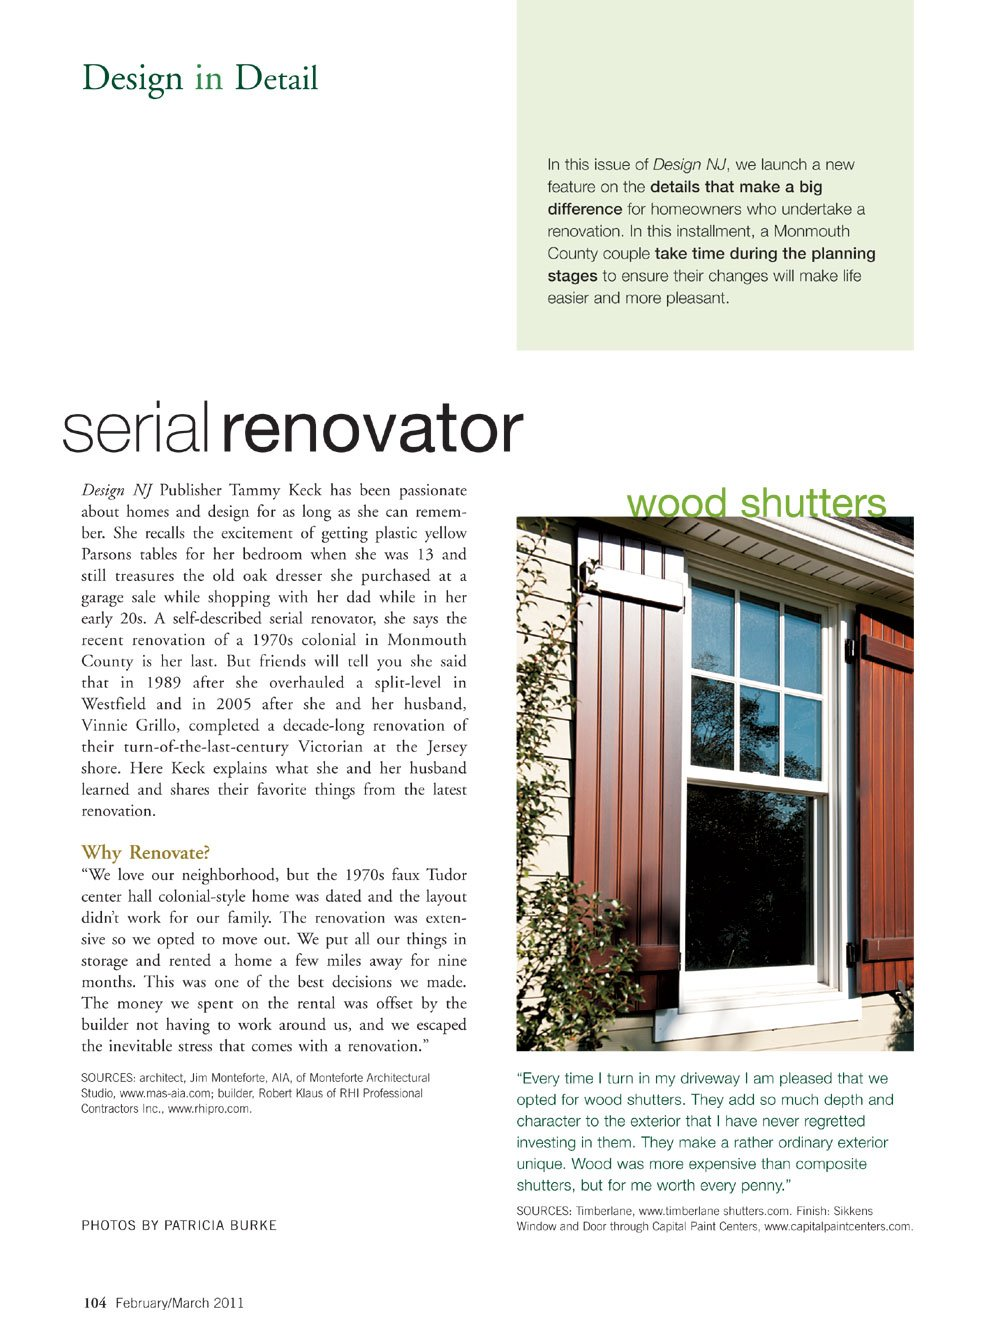 design nj feature of homeowners who undertake a renovation and how timberlane shutters made their home's exterior unique